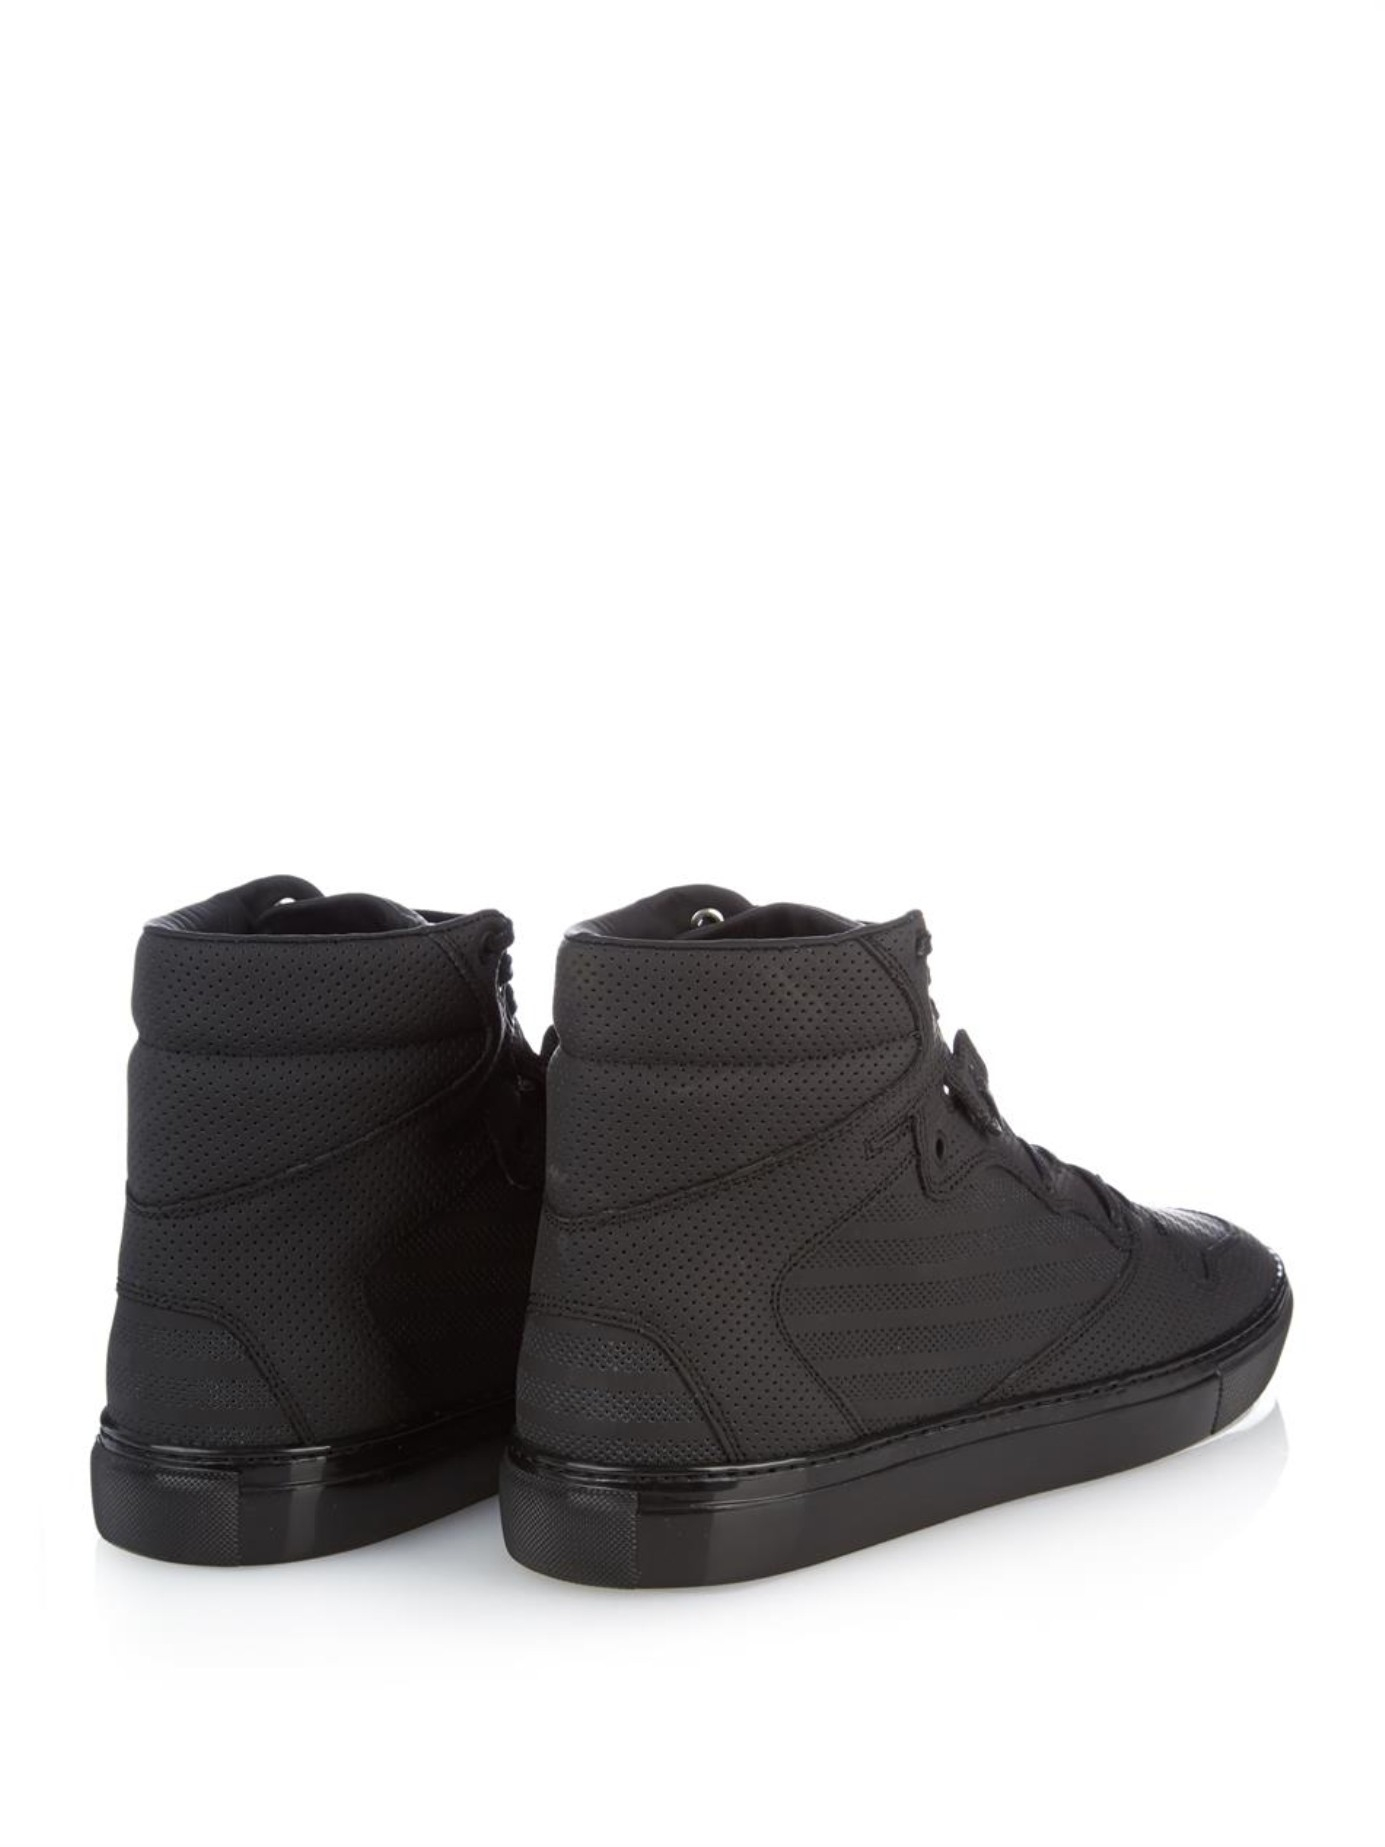 1880c2309bd45 Lyst - Balenciaga Monochrome Perforated High-Top Trainers in Black ...